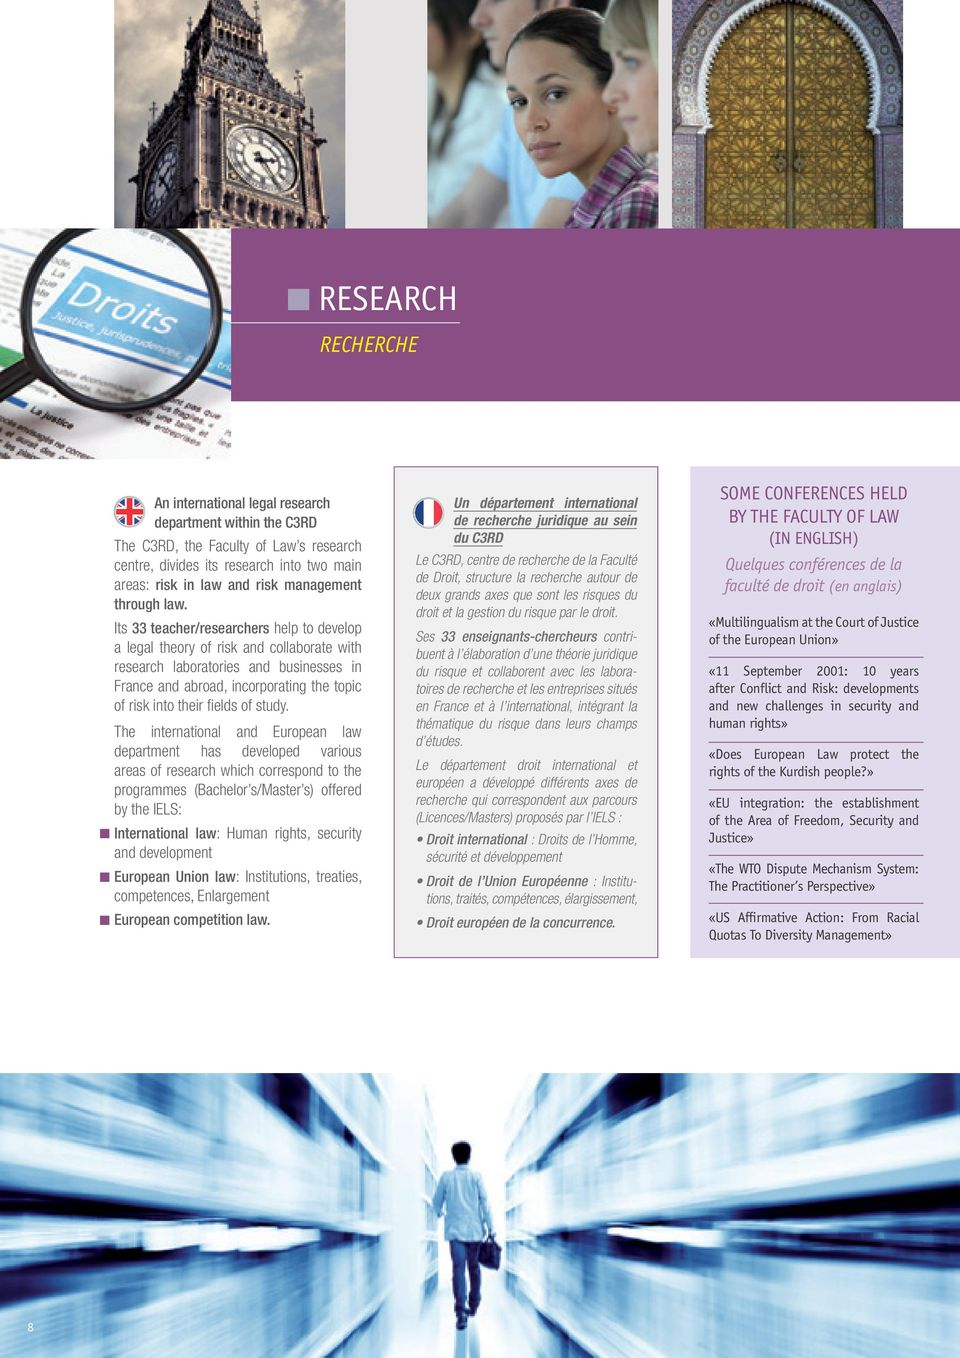 Its 33 teacher/researchers help to develop a legal theory of risk and collaborate with research laboratories and businesses in France and abroad, incorporating the topic of risk into their fi elds of